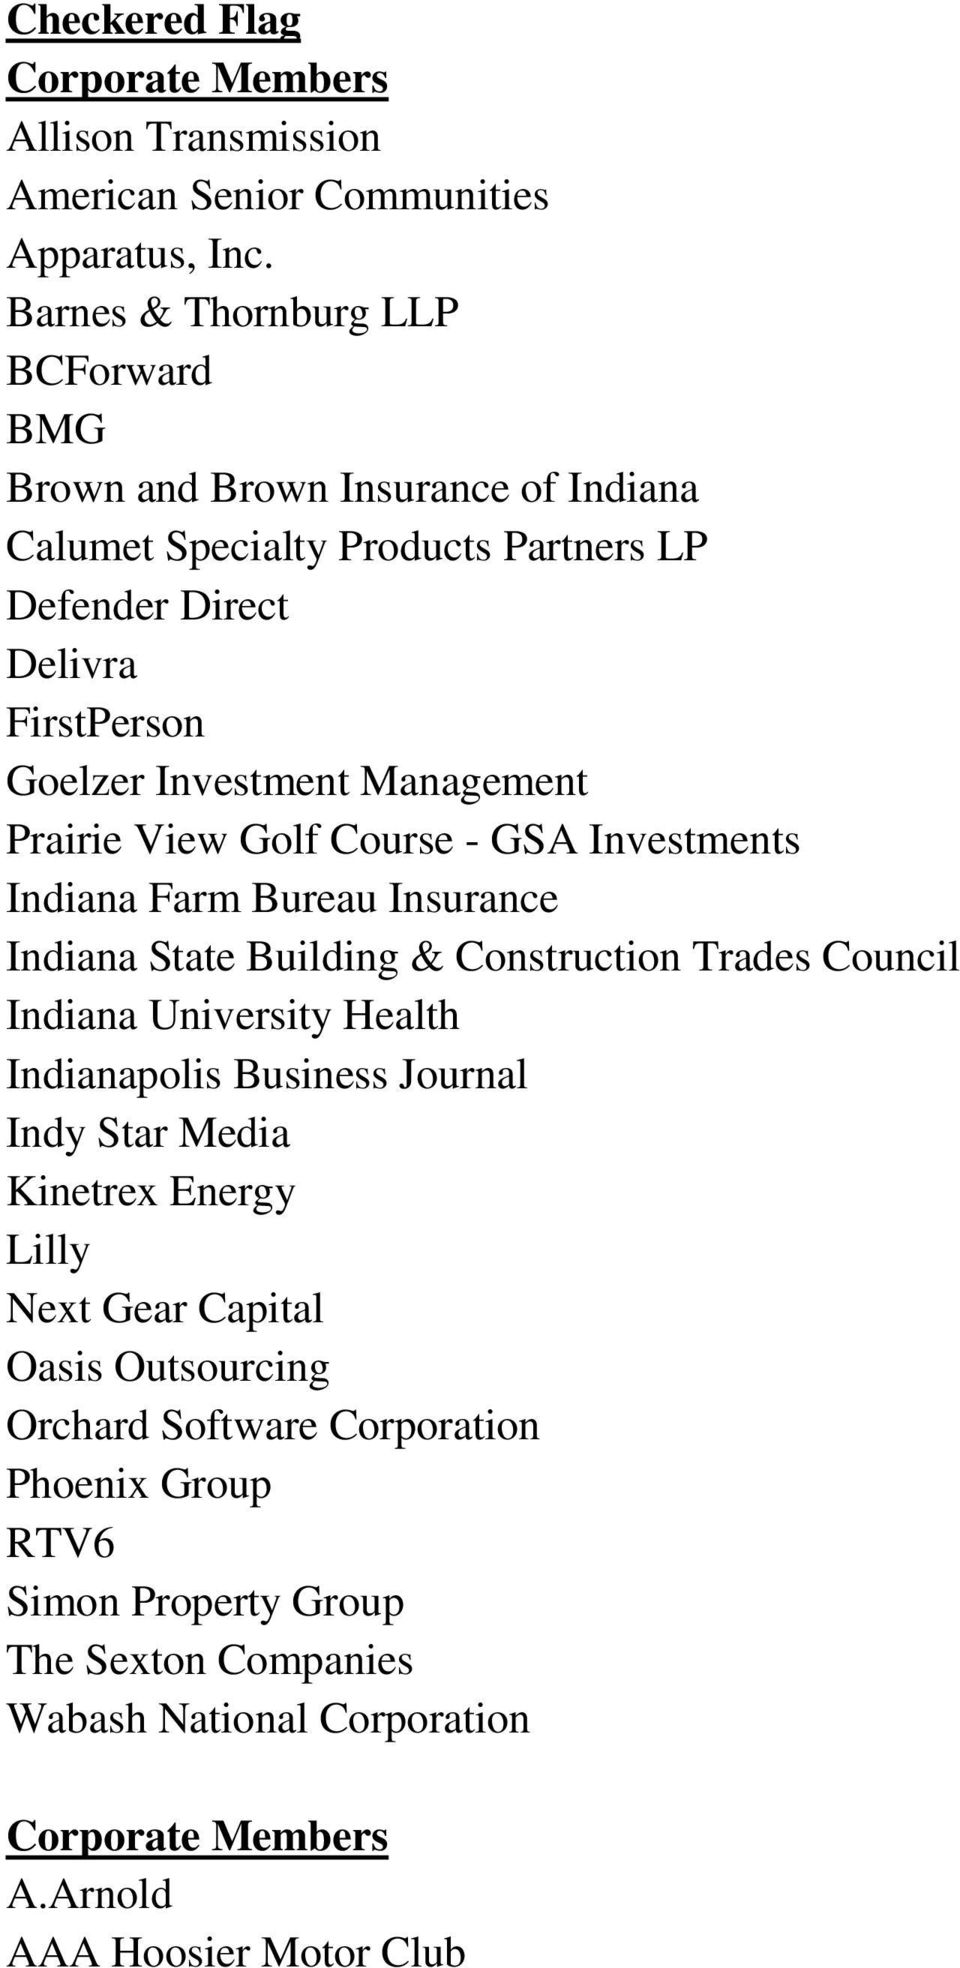 Management Prairie View Golf Course - GSA Investments Indiana Farm Bureau Insurance Indiana State Building & Construction Trades Council Indiana University Health